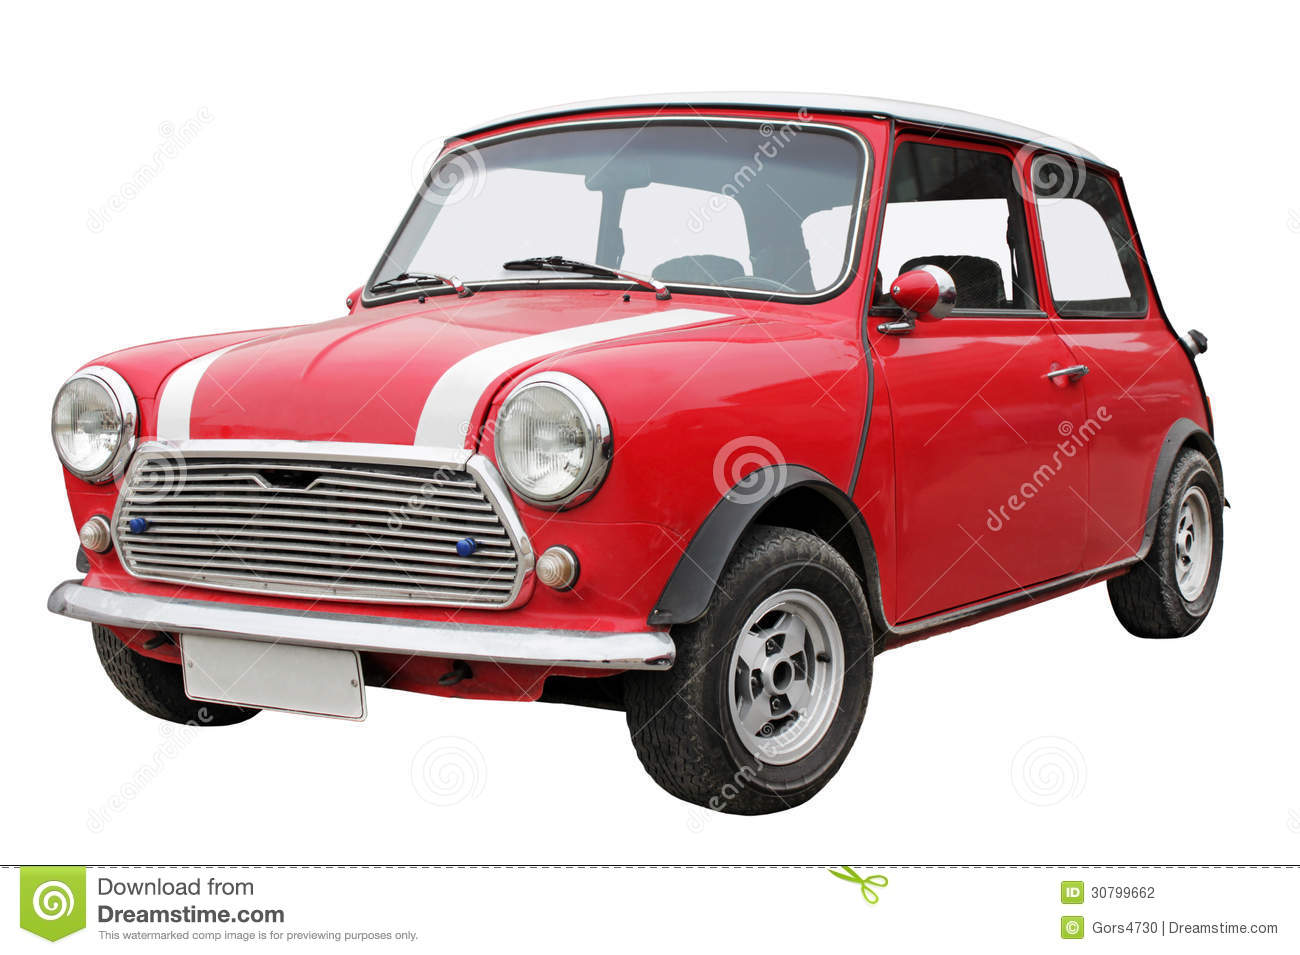 old small red car isolated on a white background